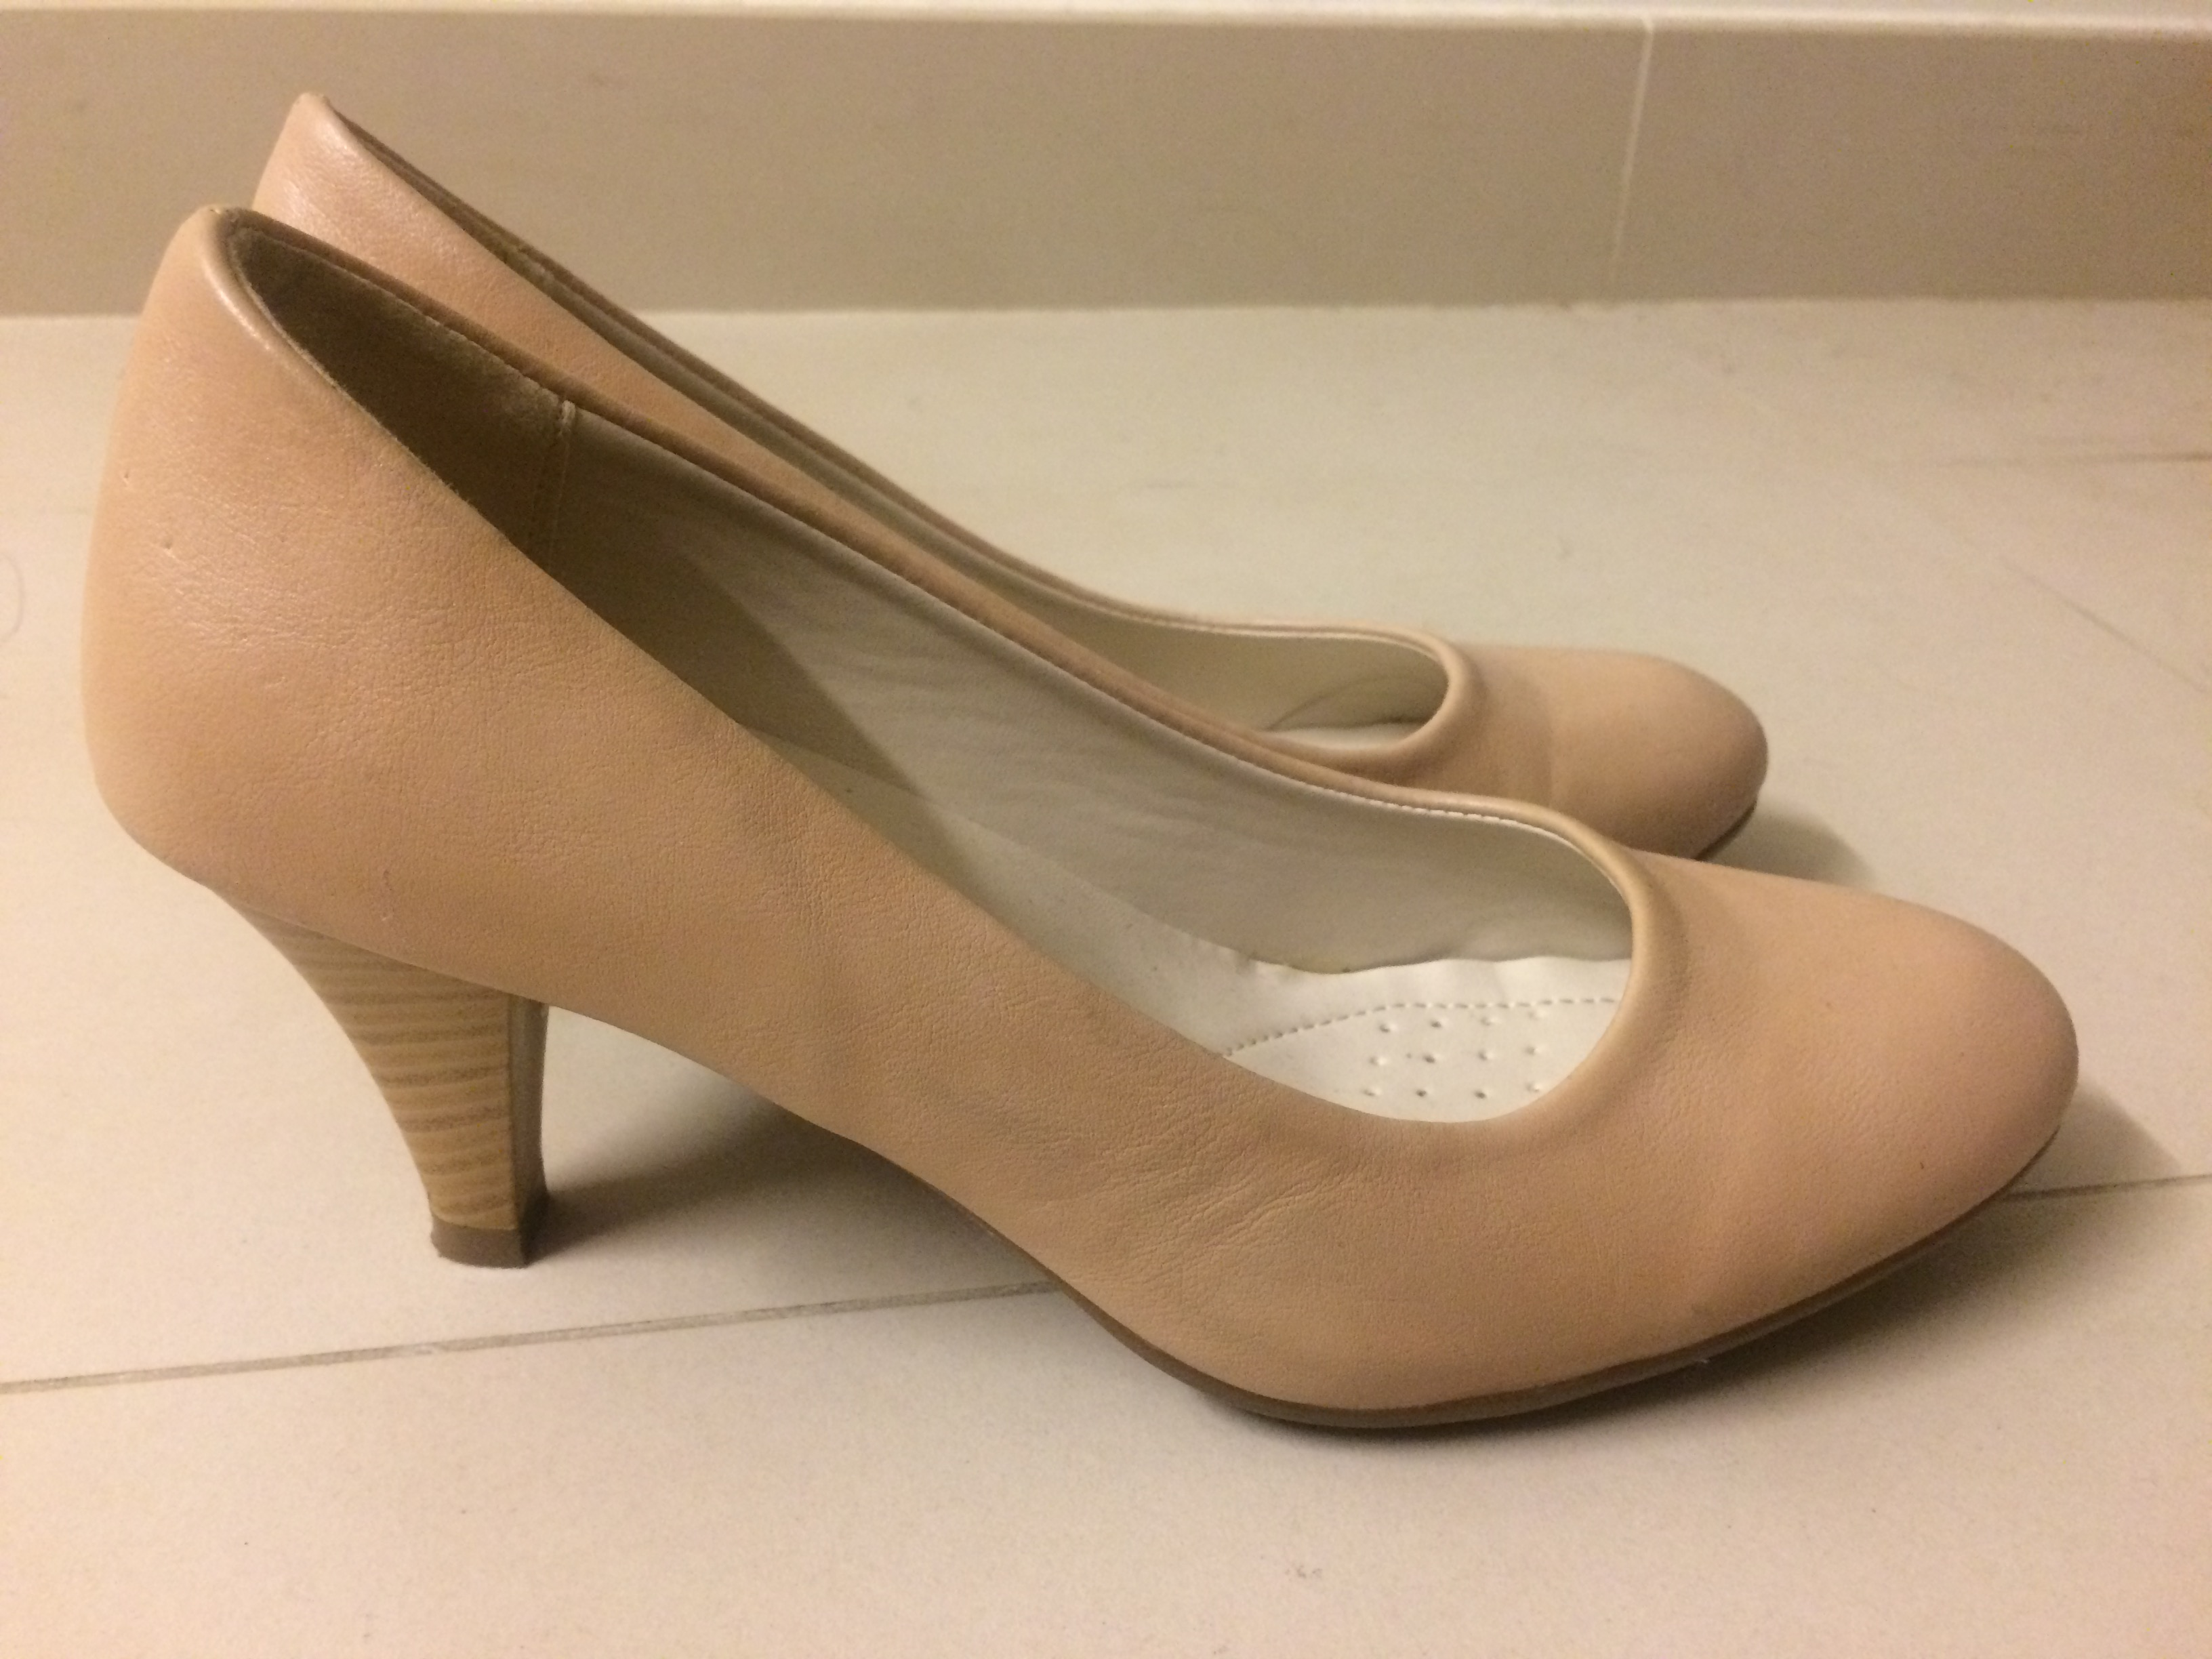 e821dd62e nude color shoes, Women's Fashion, Shoes on Carousell